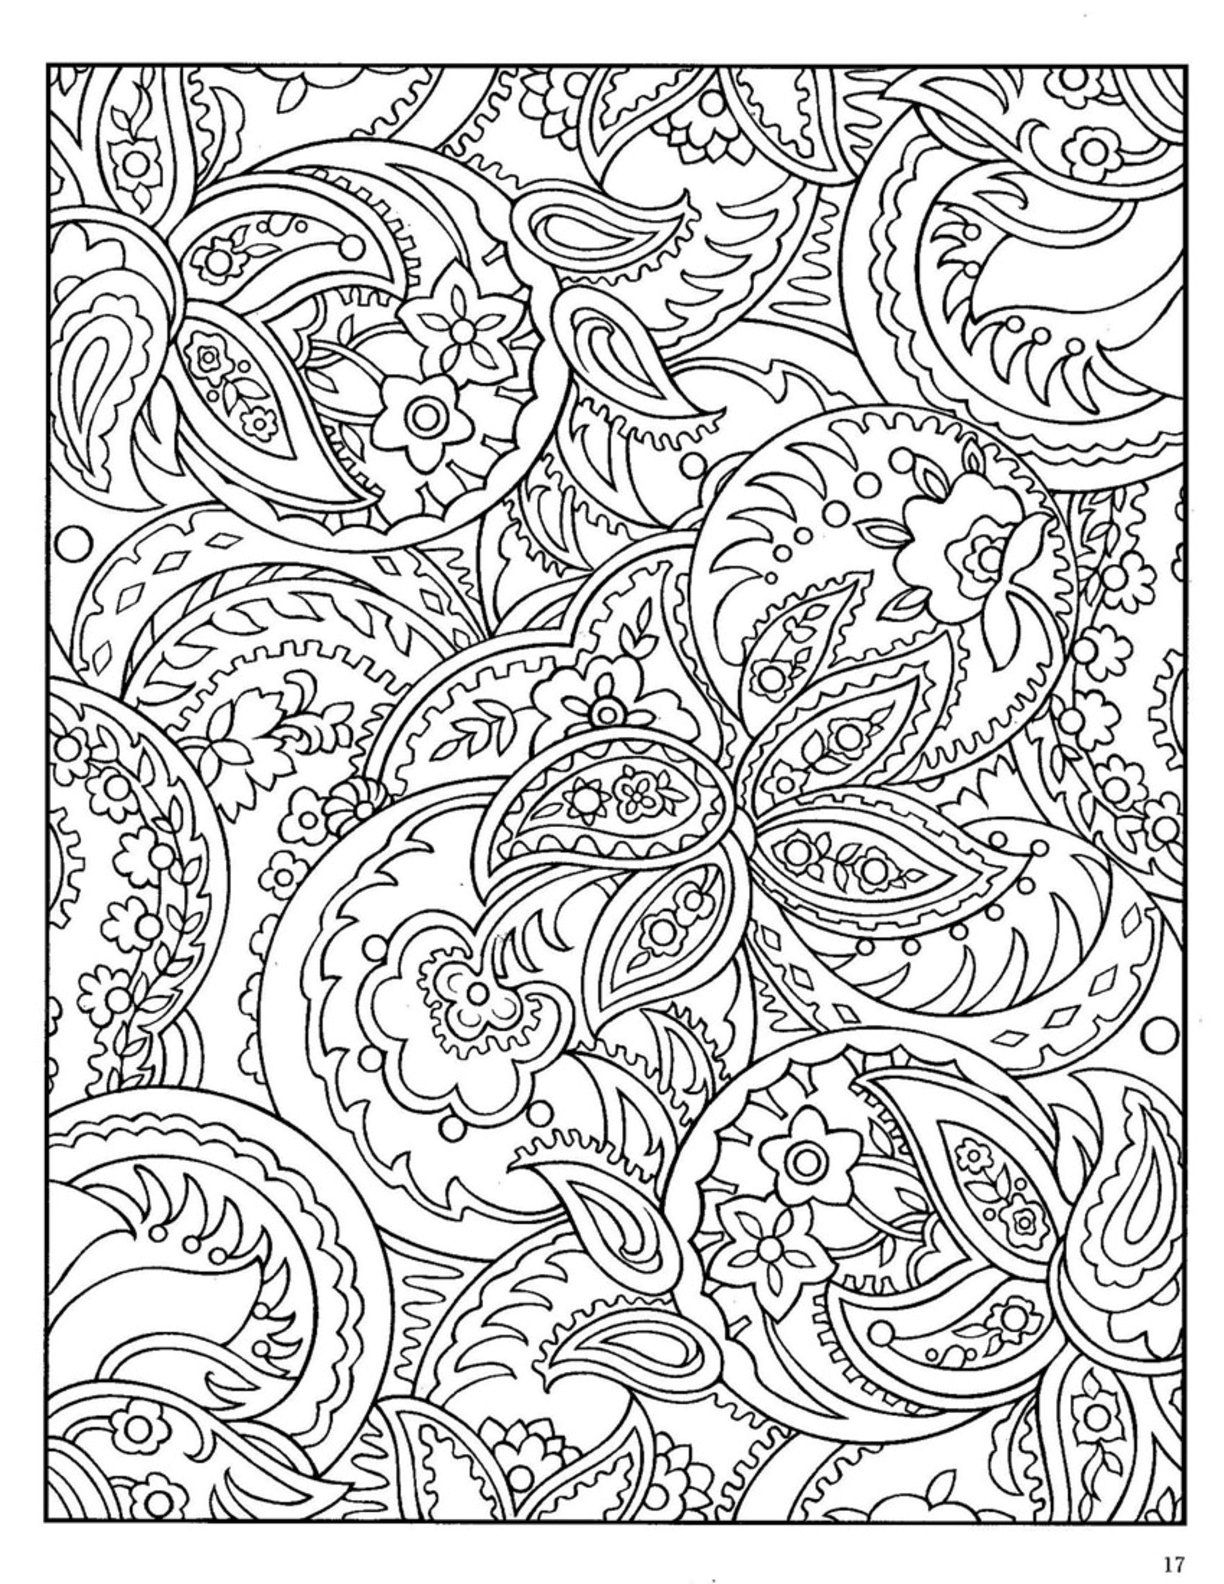 paisley coloring pages peace - photo#24